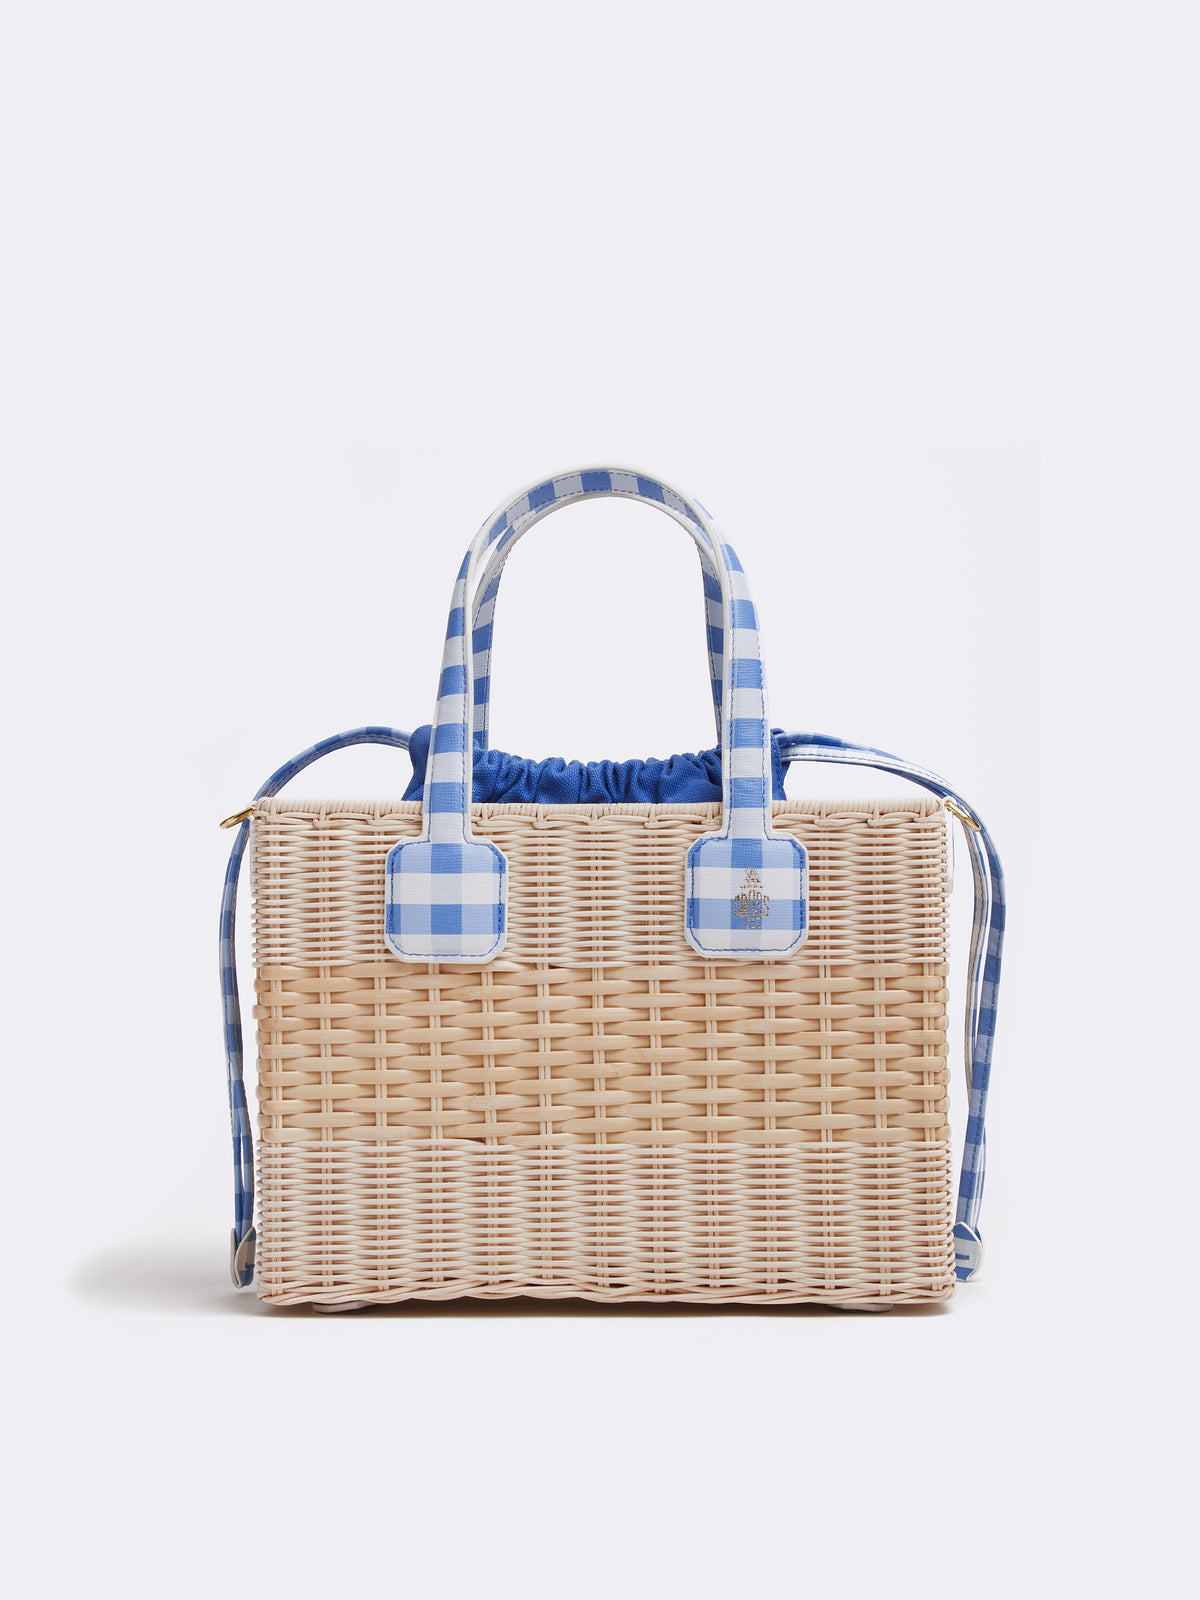 Mark Cross Manray Rattan & Leather Tote Bag Mini Franzi Gingham Regatta Blue / Natural Raffia Front